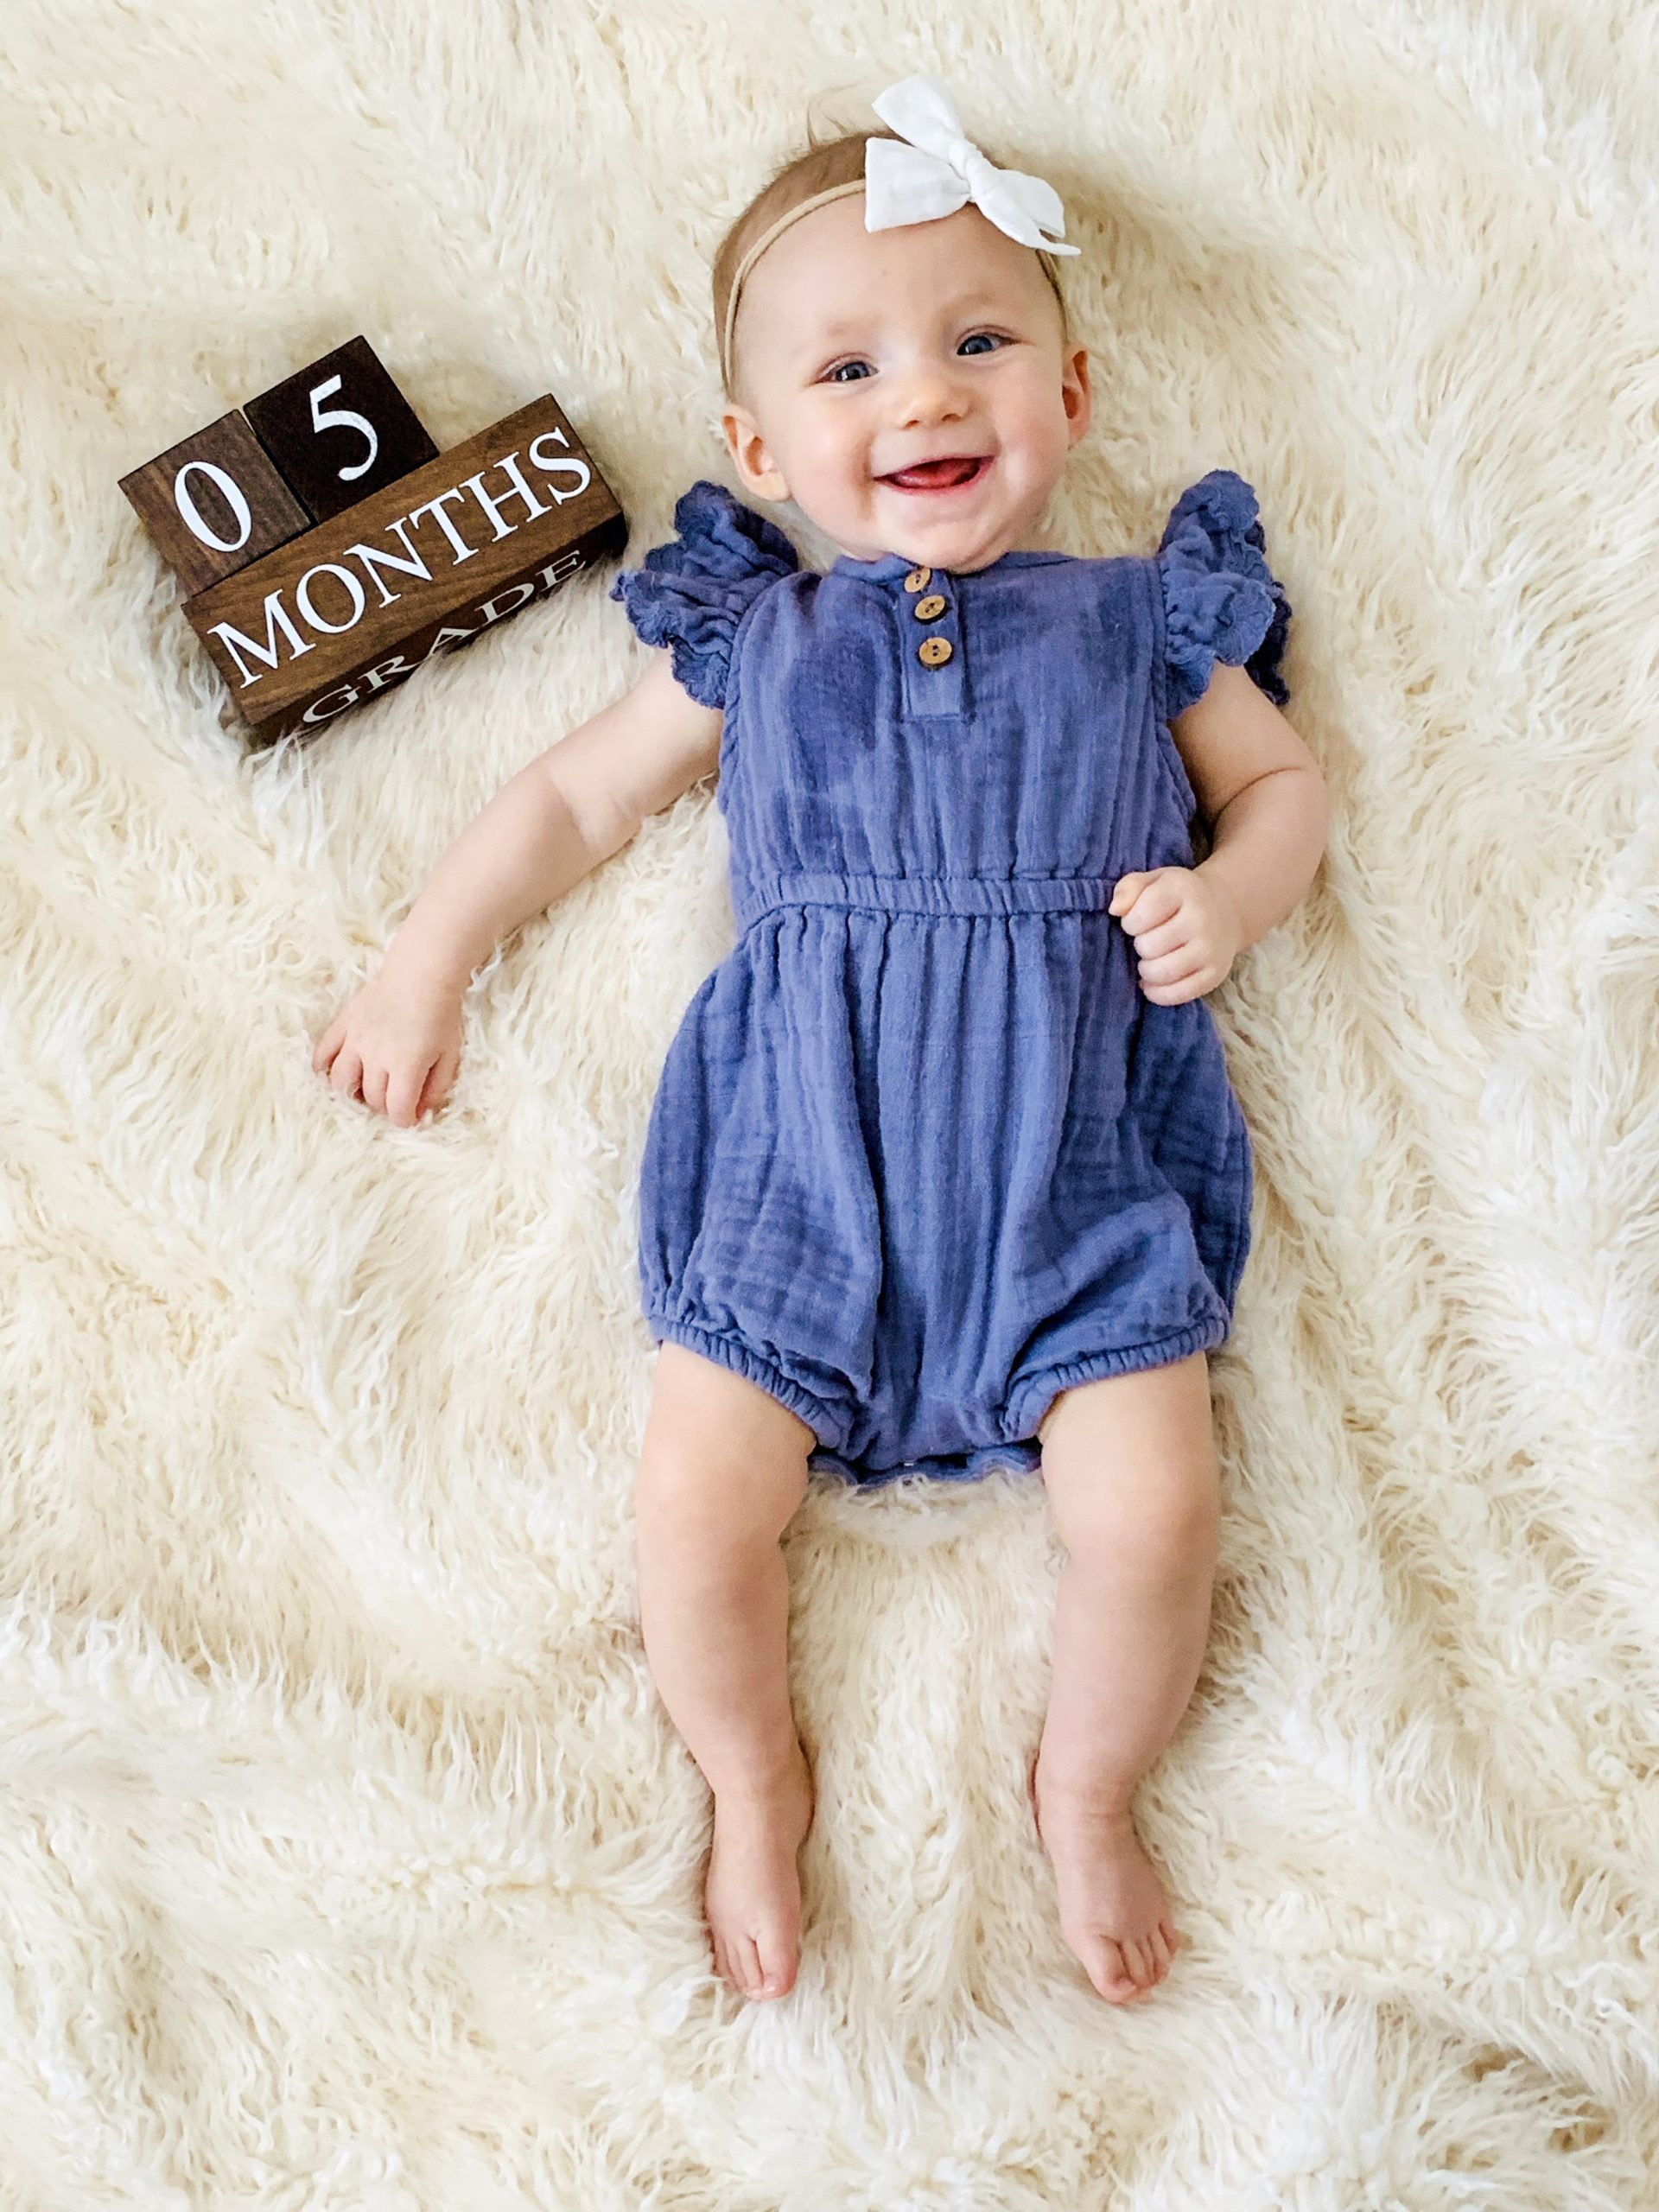 5 month baby update